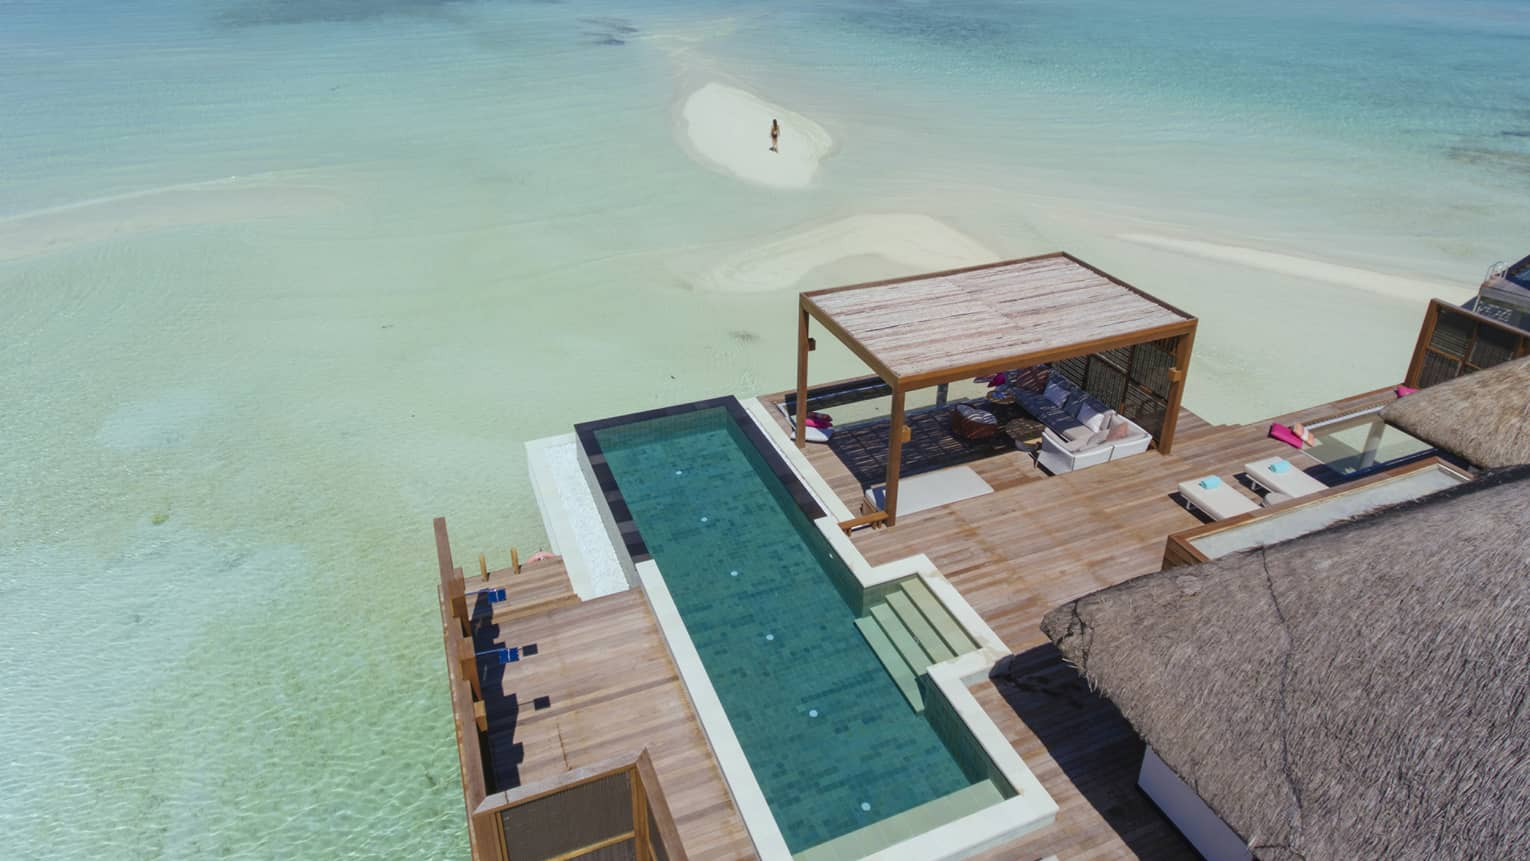 Aerial view of overwater bungalow with swimming pool, woman standing on sandbar in lagoon